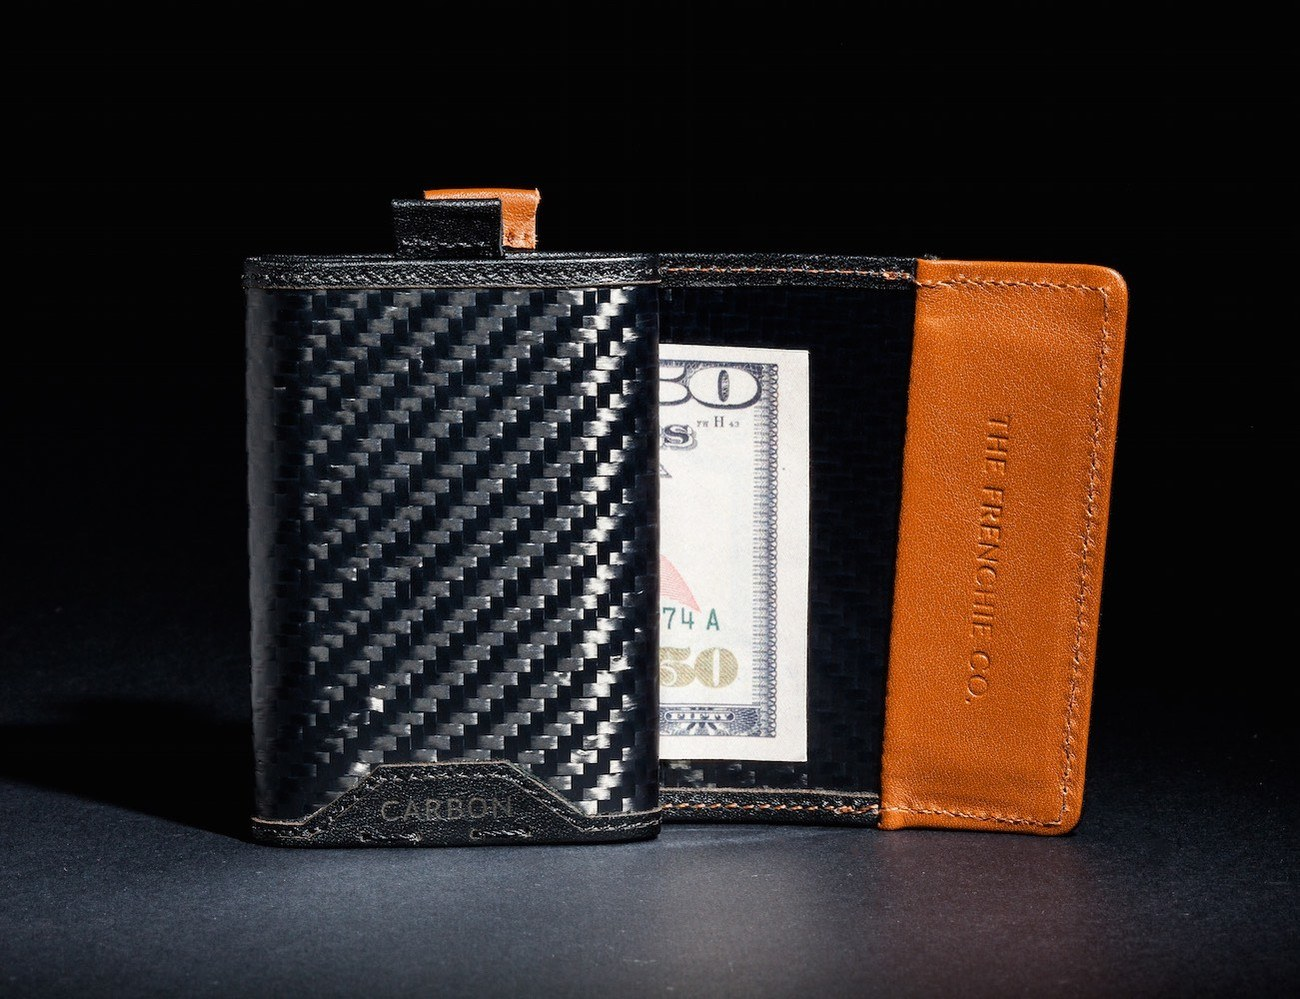 The+World%26%238217%3Bs+First+Speed+Wallet+Now+In+Carbon+Fiber